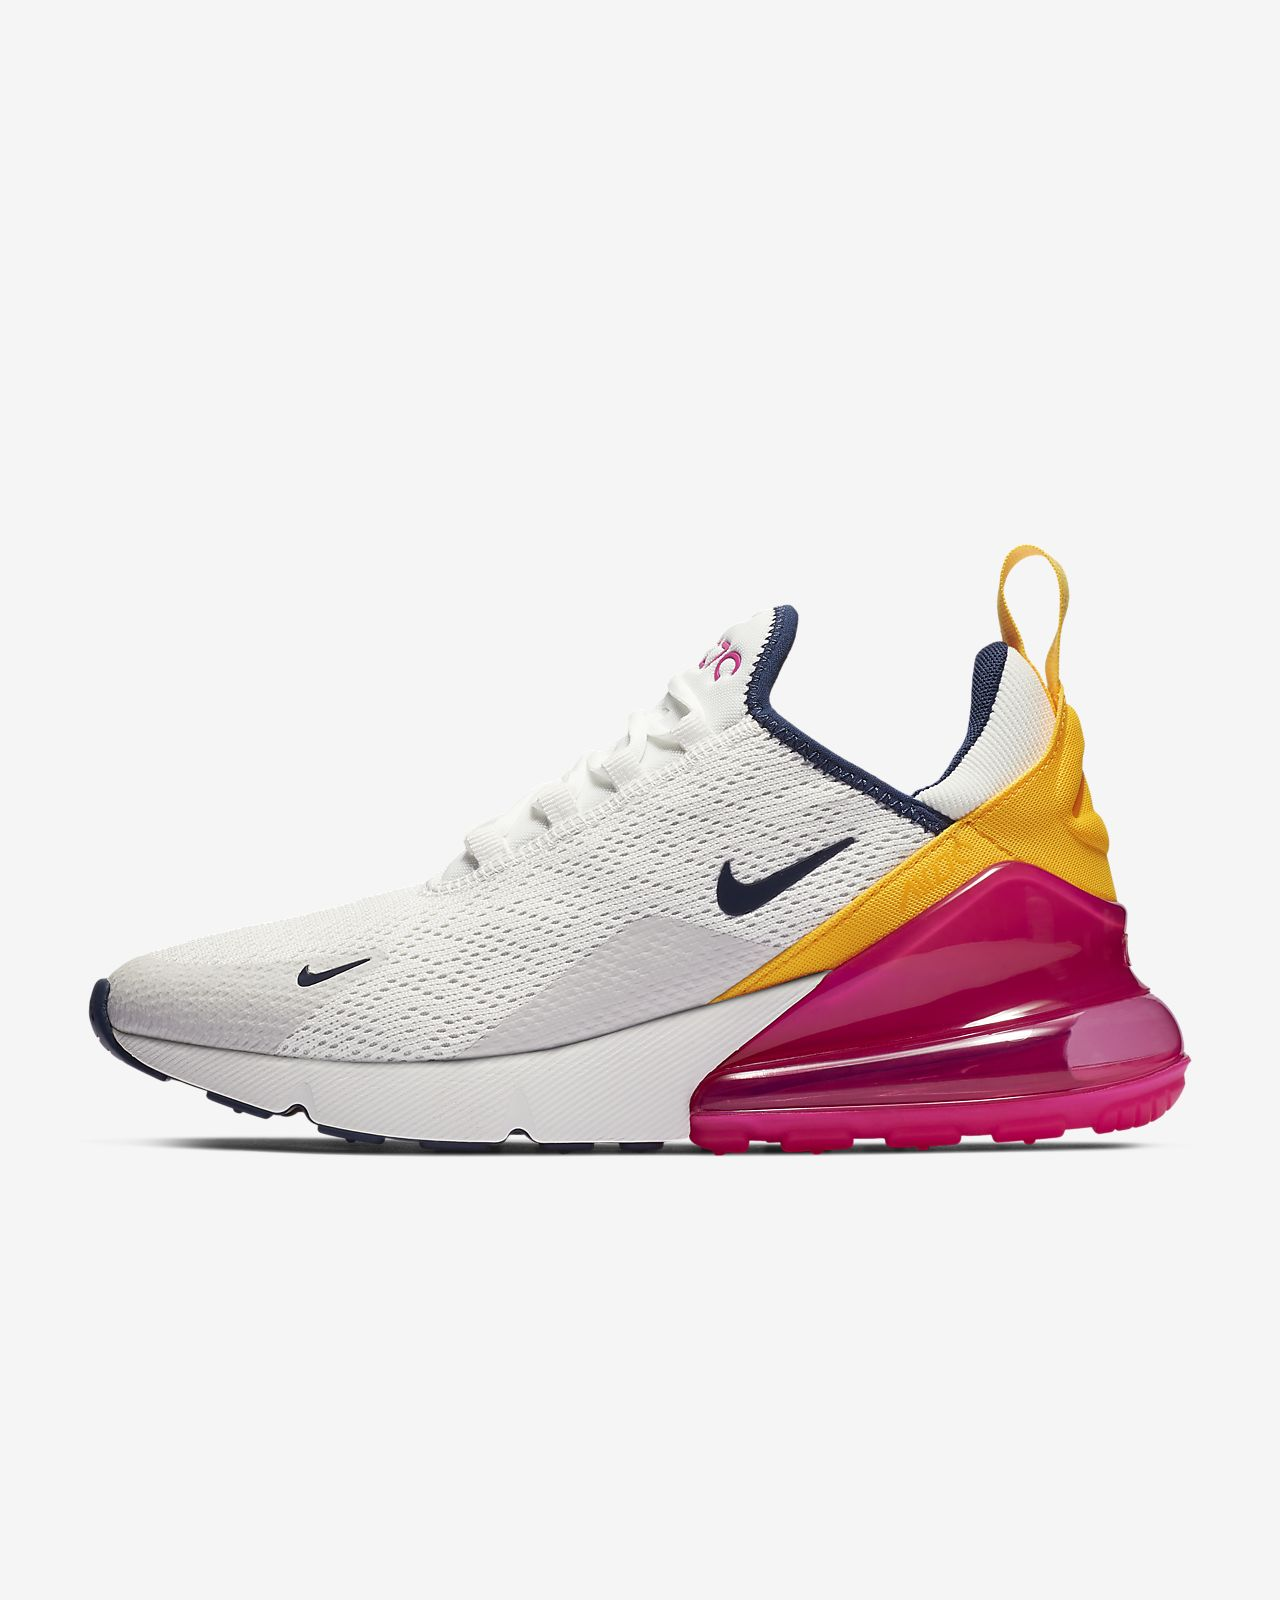 9779cd8b7a15cb Nike Air Max 270 Premium Women s Shoe. Nike.com ID